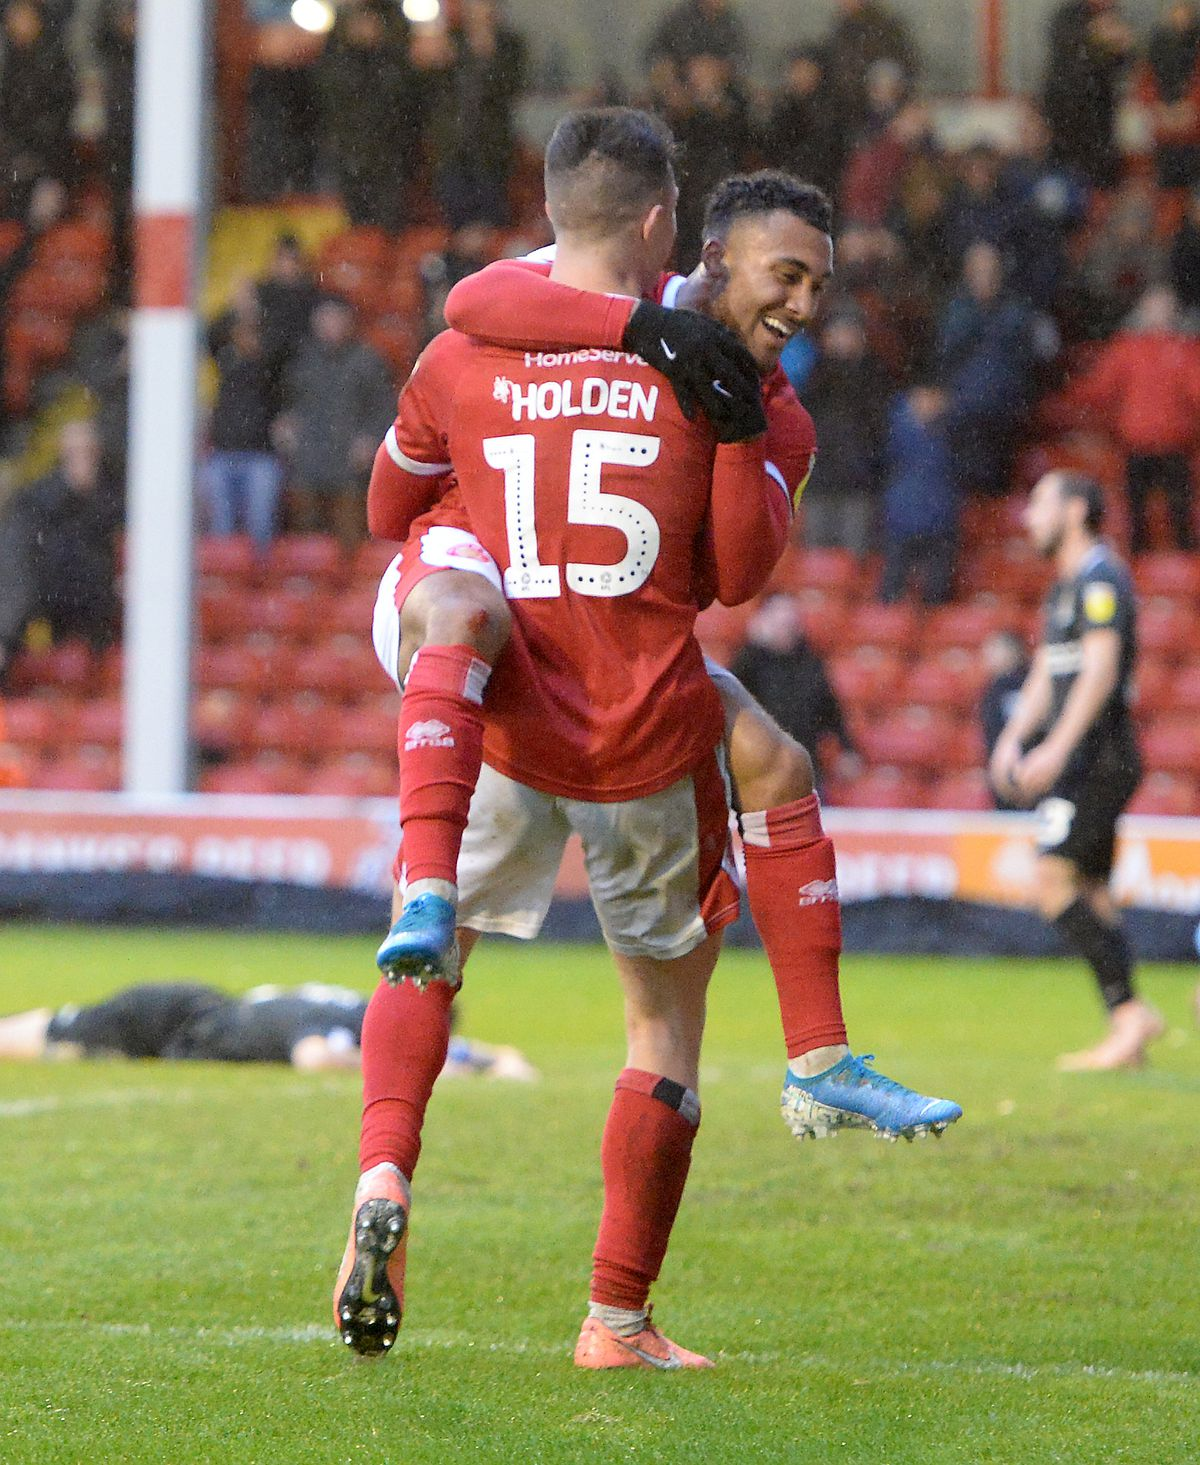 Rory Holden celebrates his winner against Northampton with Wes McDonald